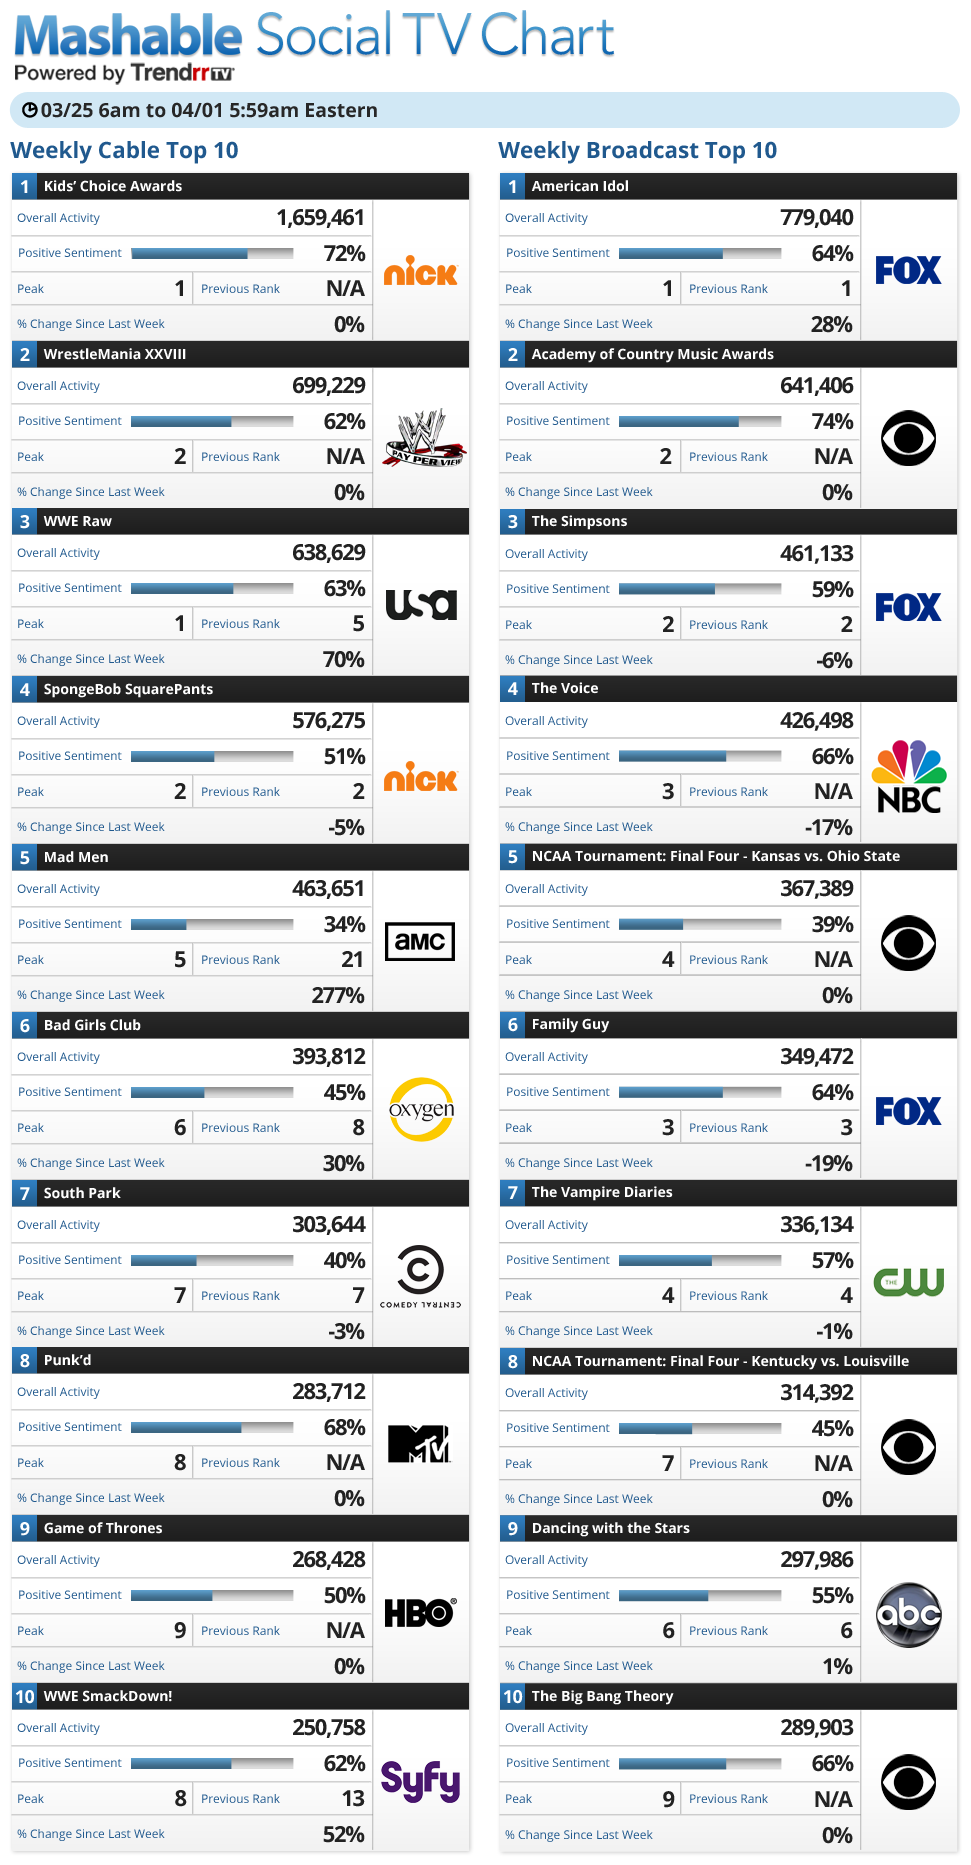 20 TV Shows With the Most Social Media Buzz This Week [CHART